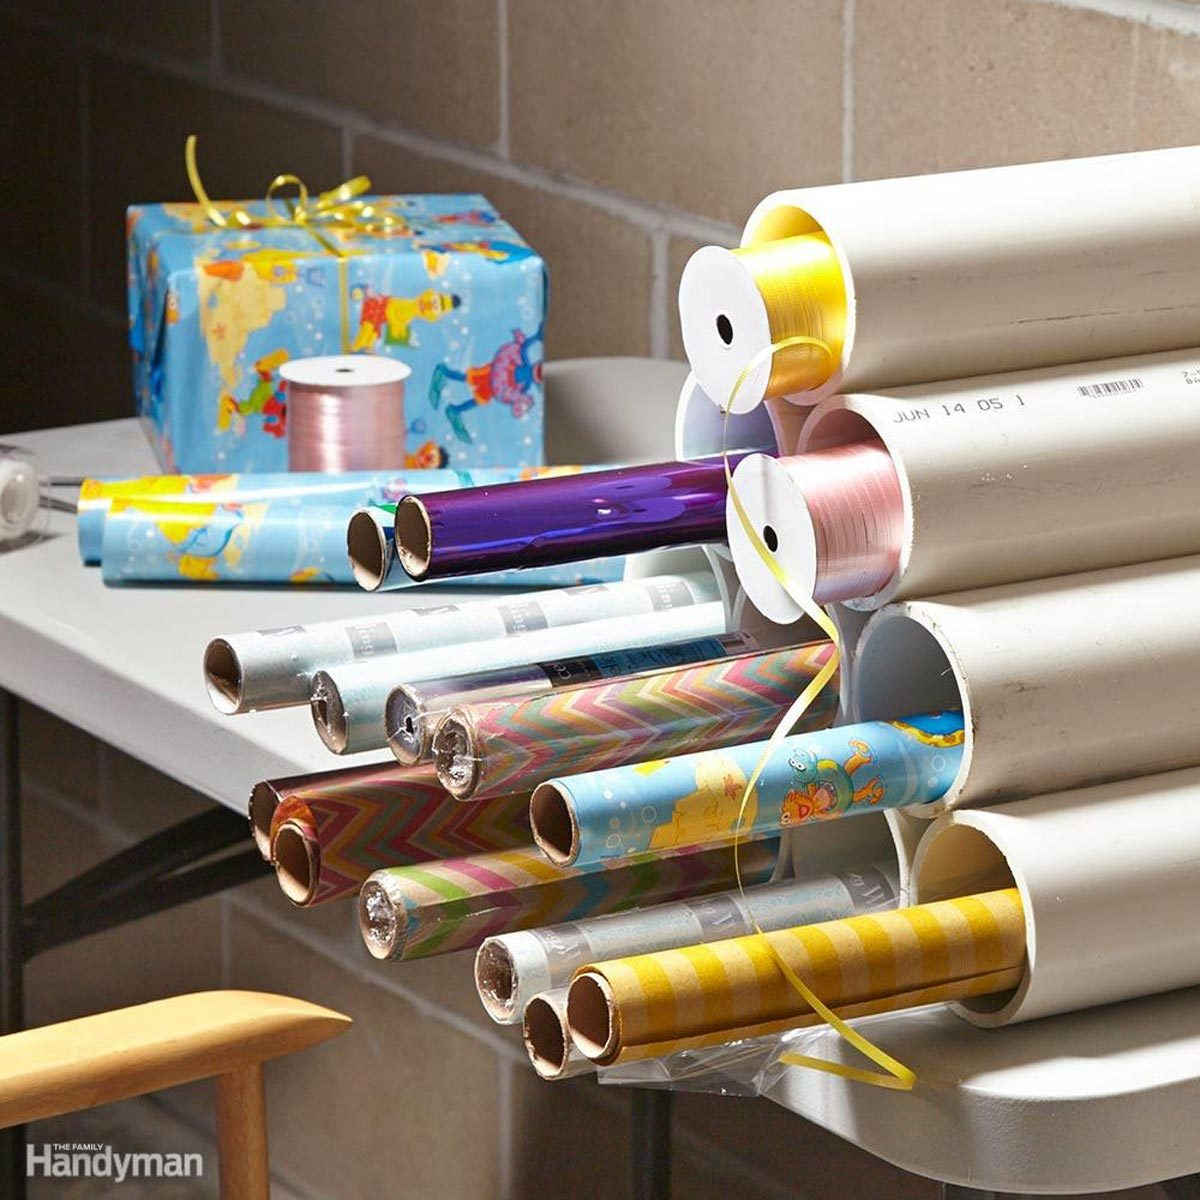 FH14JAU_550_08_006 gift wrap pvc pipe storage